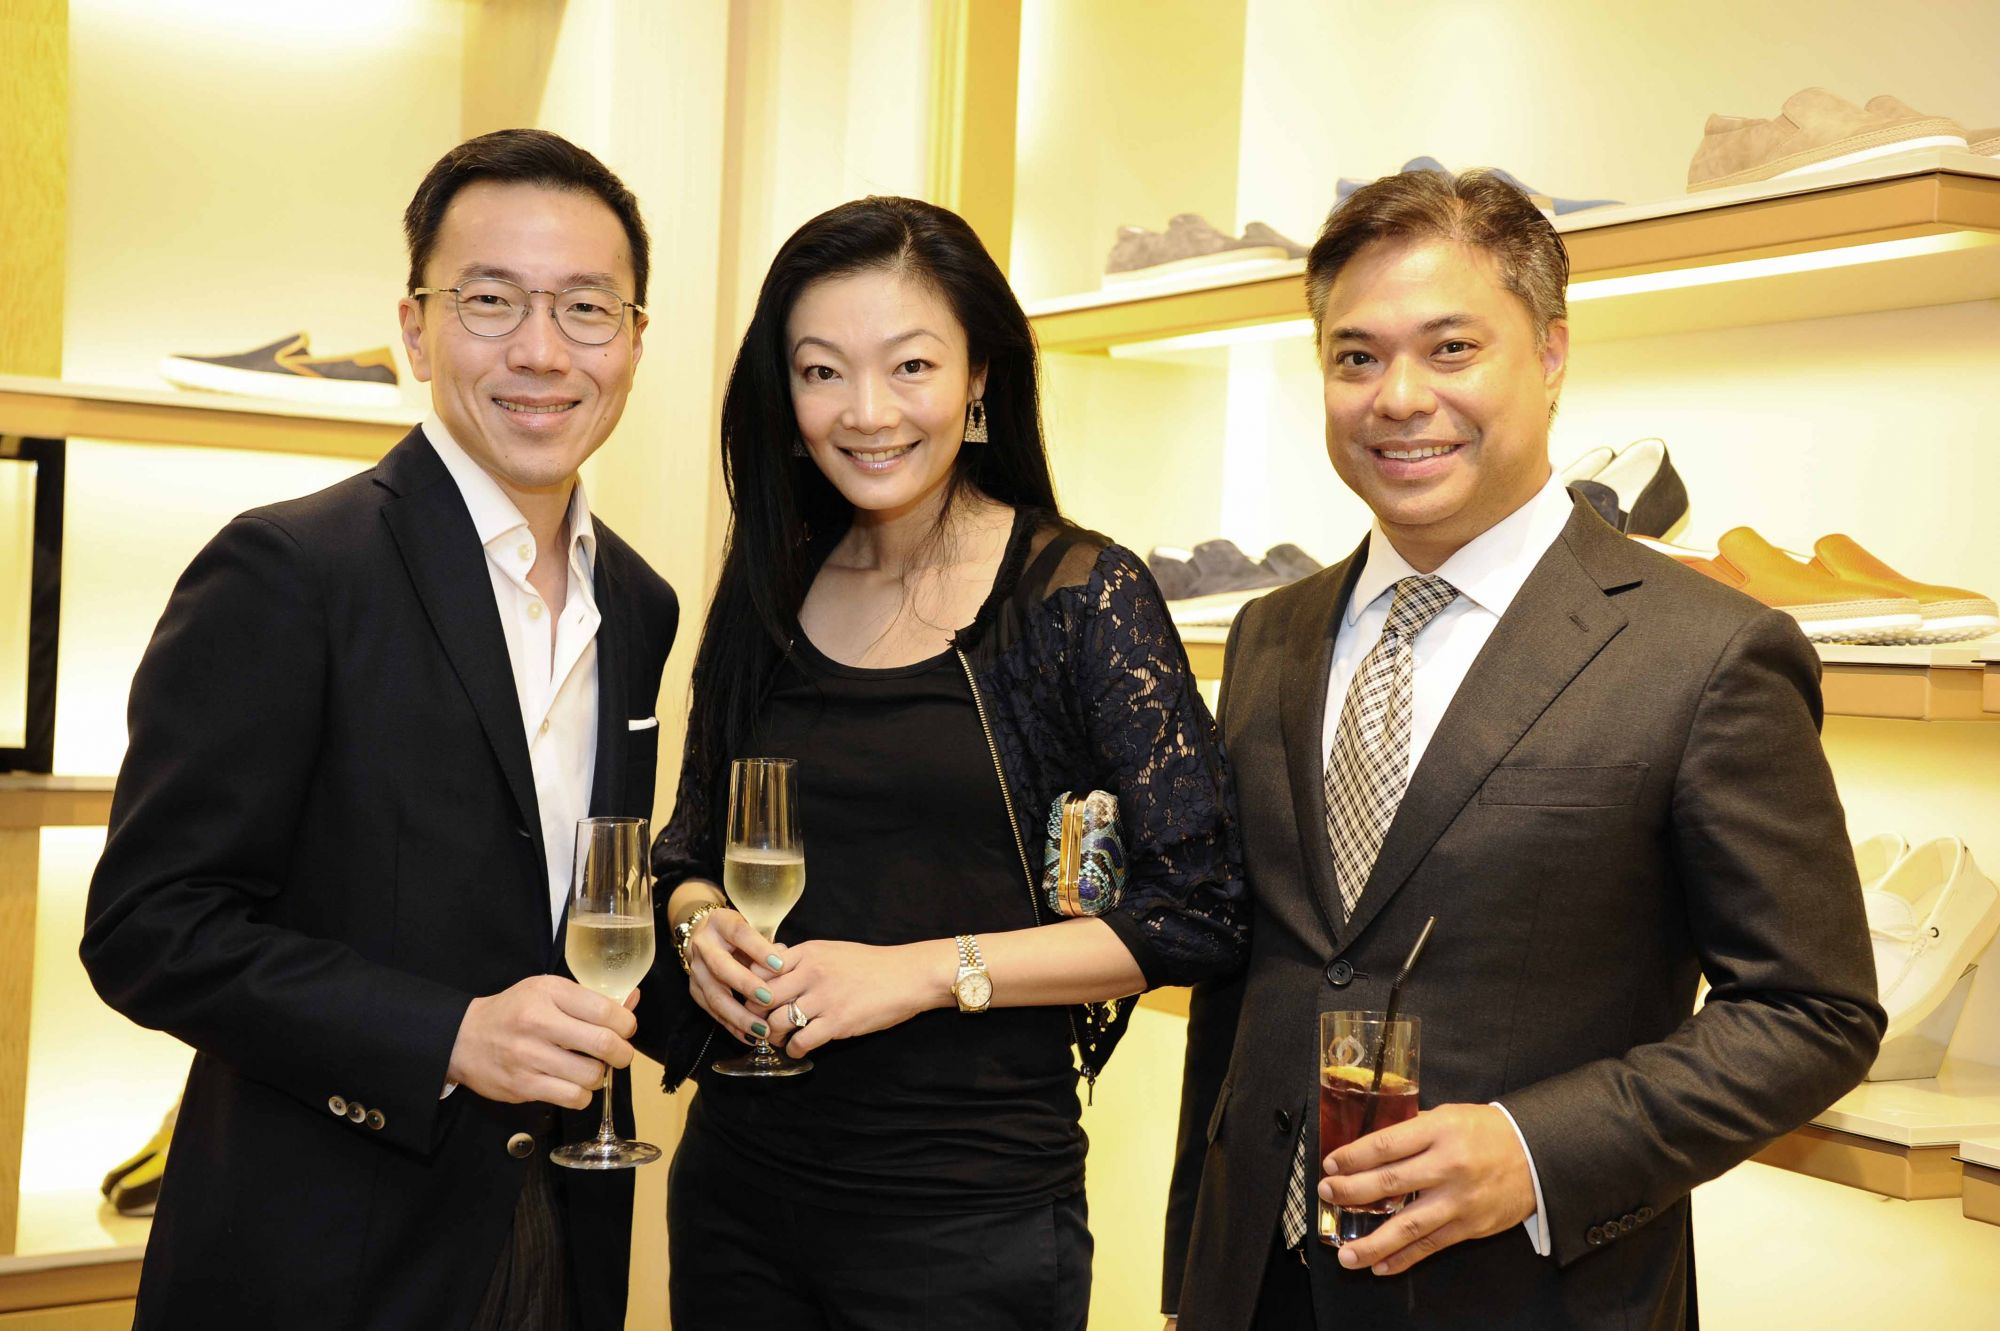 (From left) Beh Swan Gin, Maisy Koh